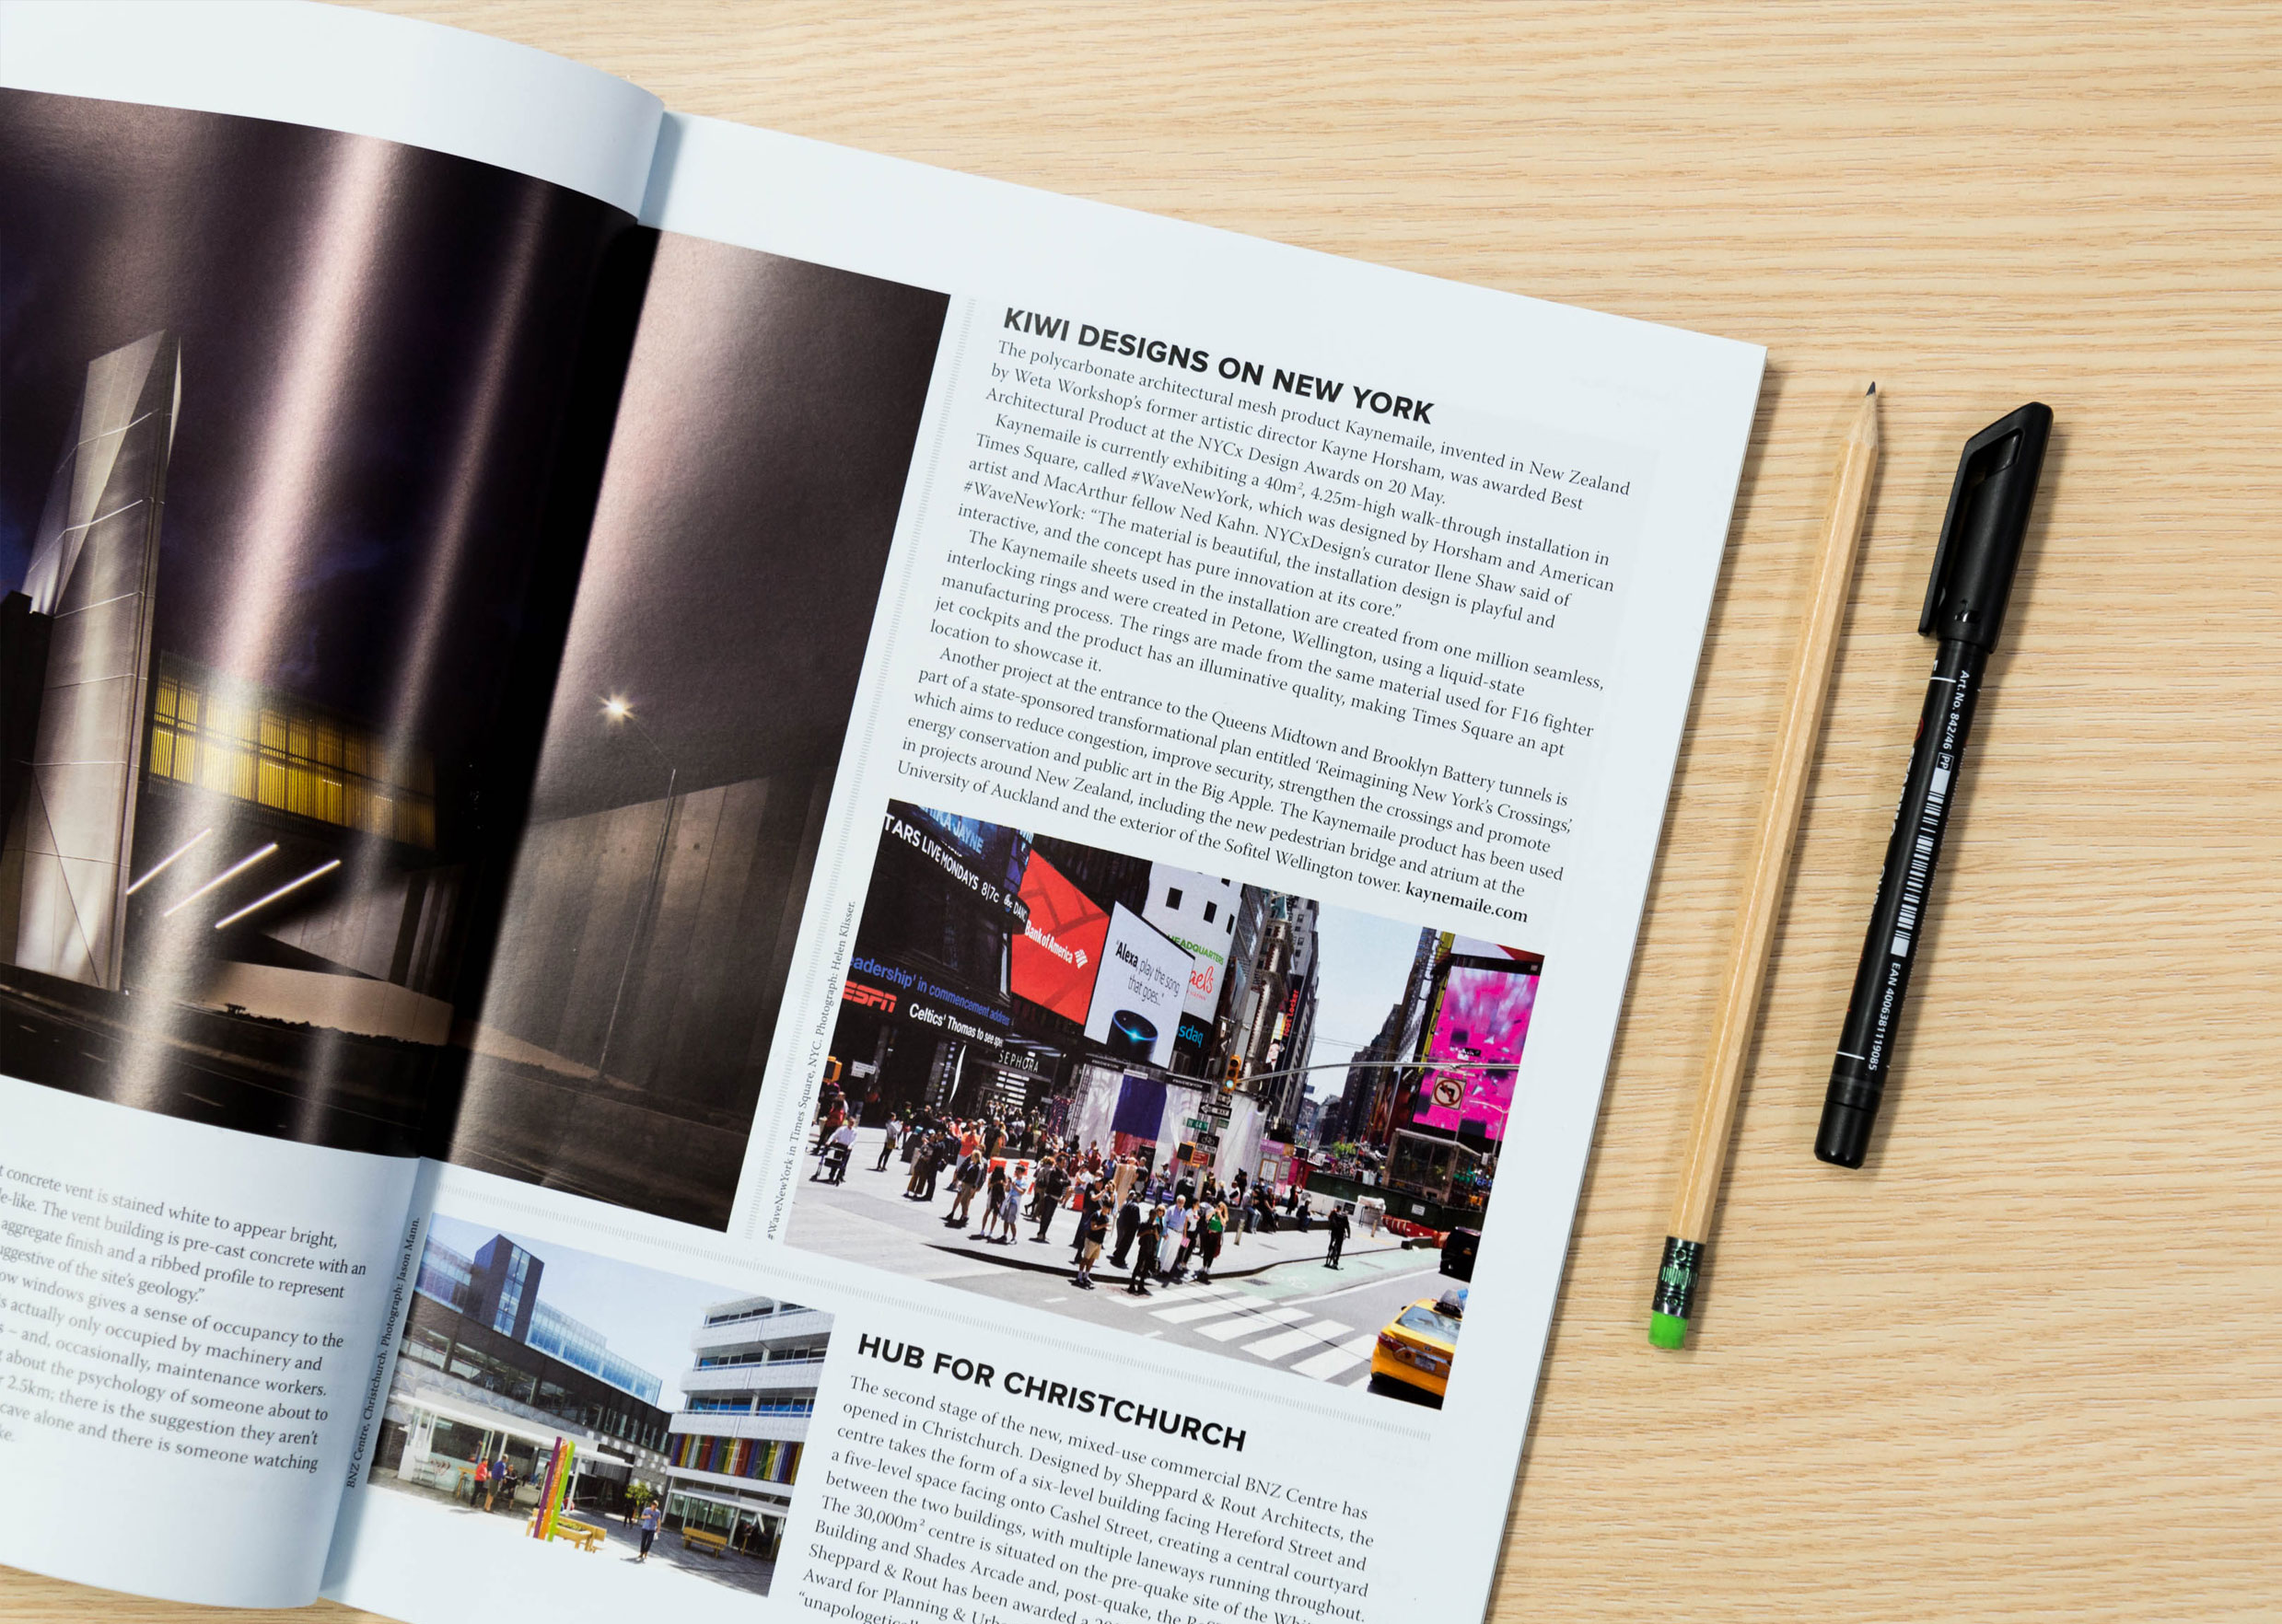 Kiwi Designs on New York Kaynemaile feature in July issue of Architecture NZ magazine